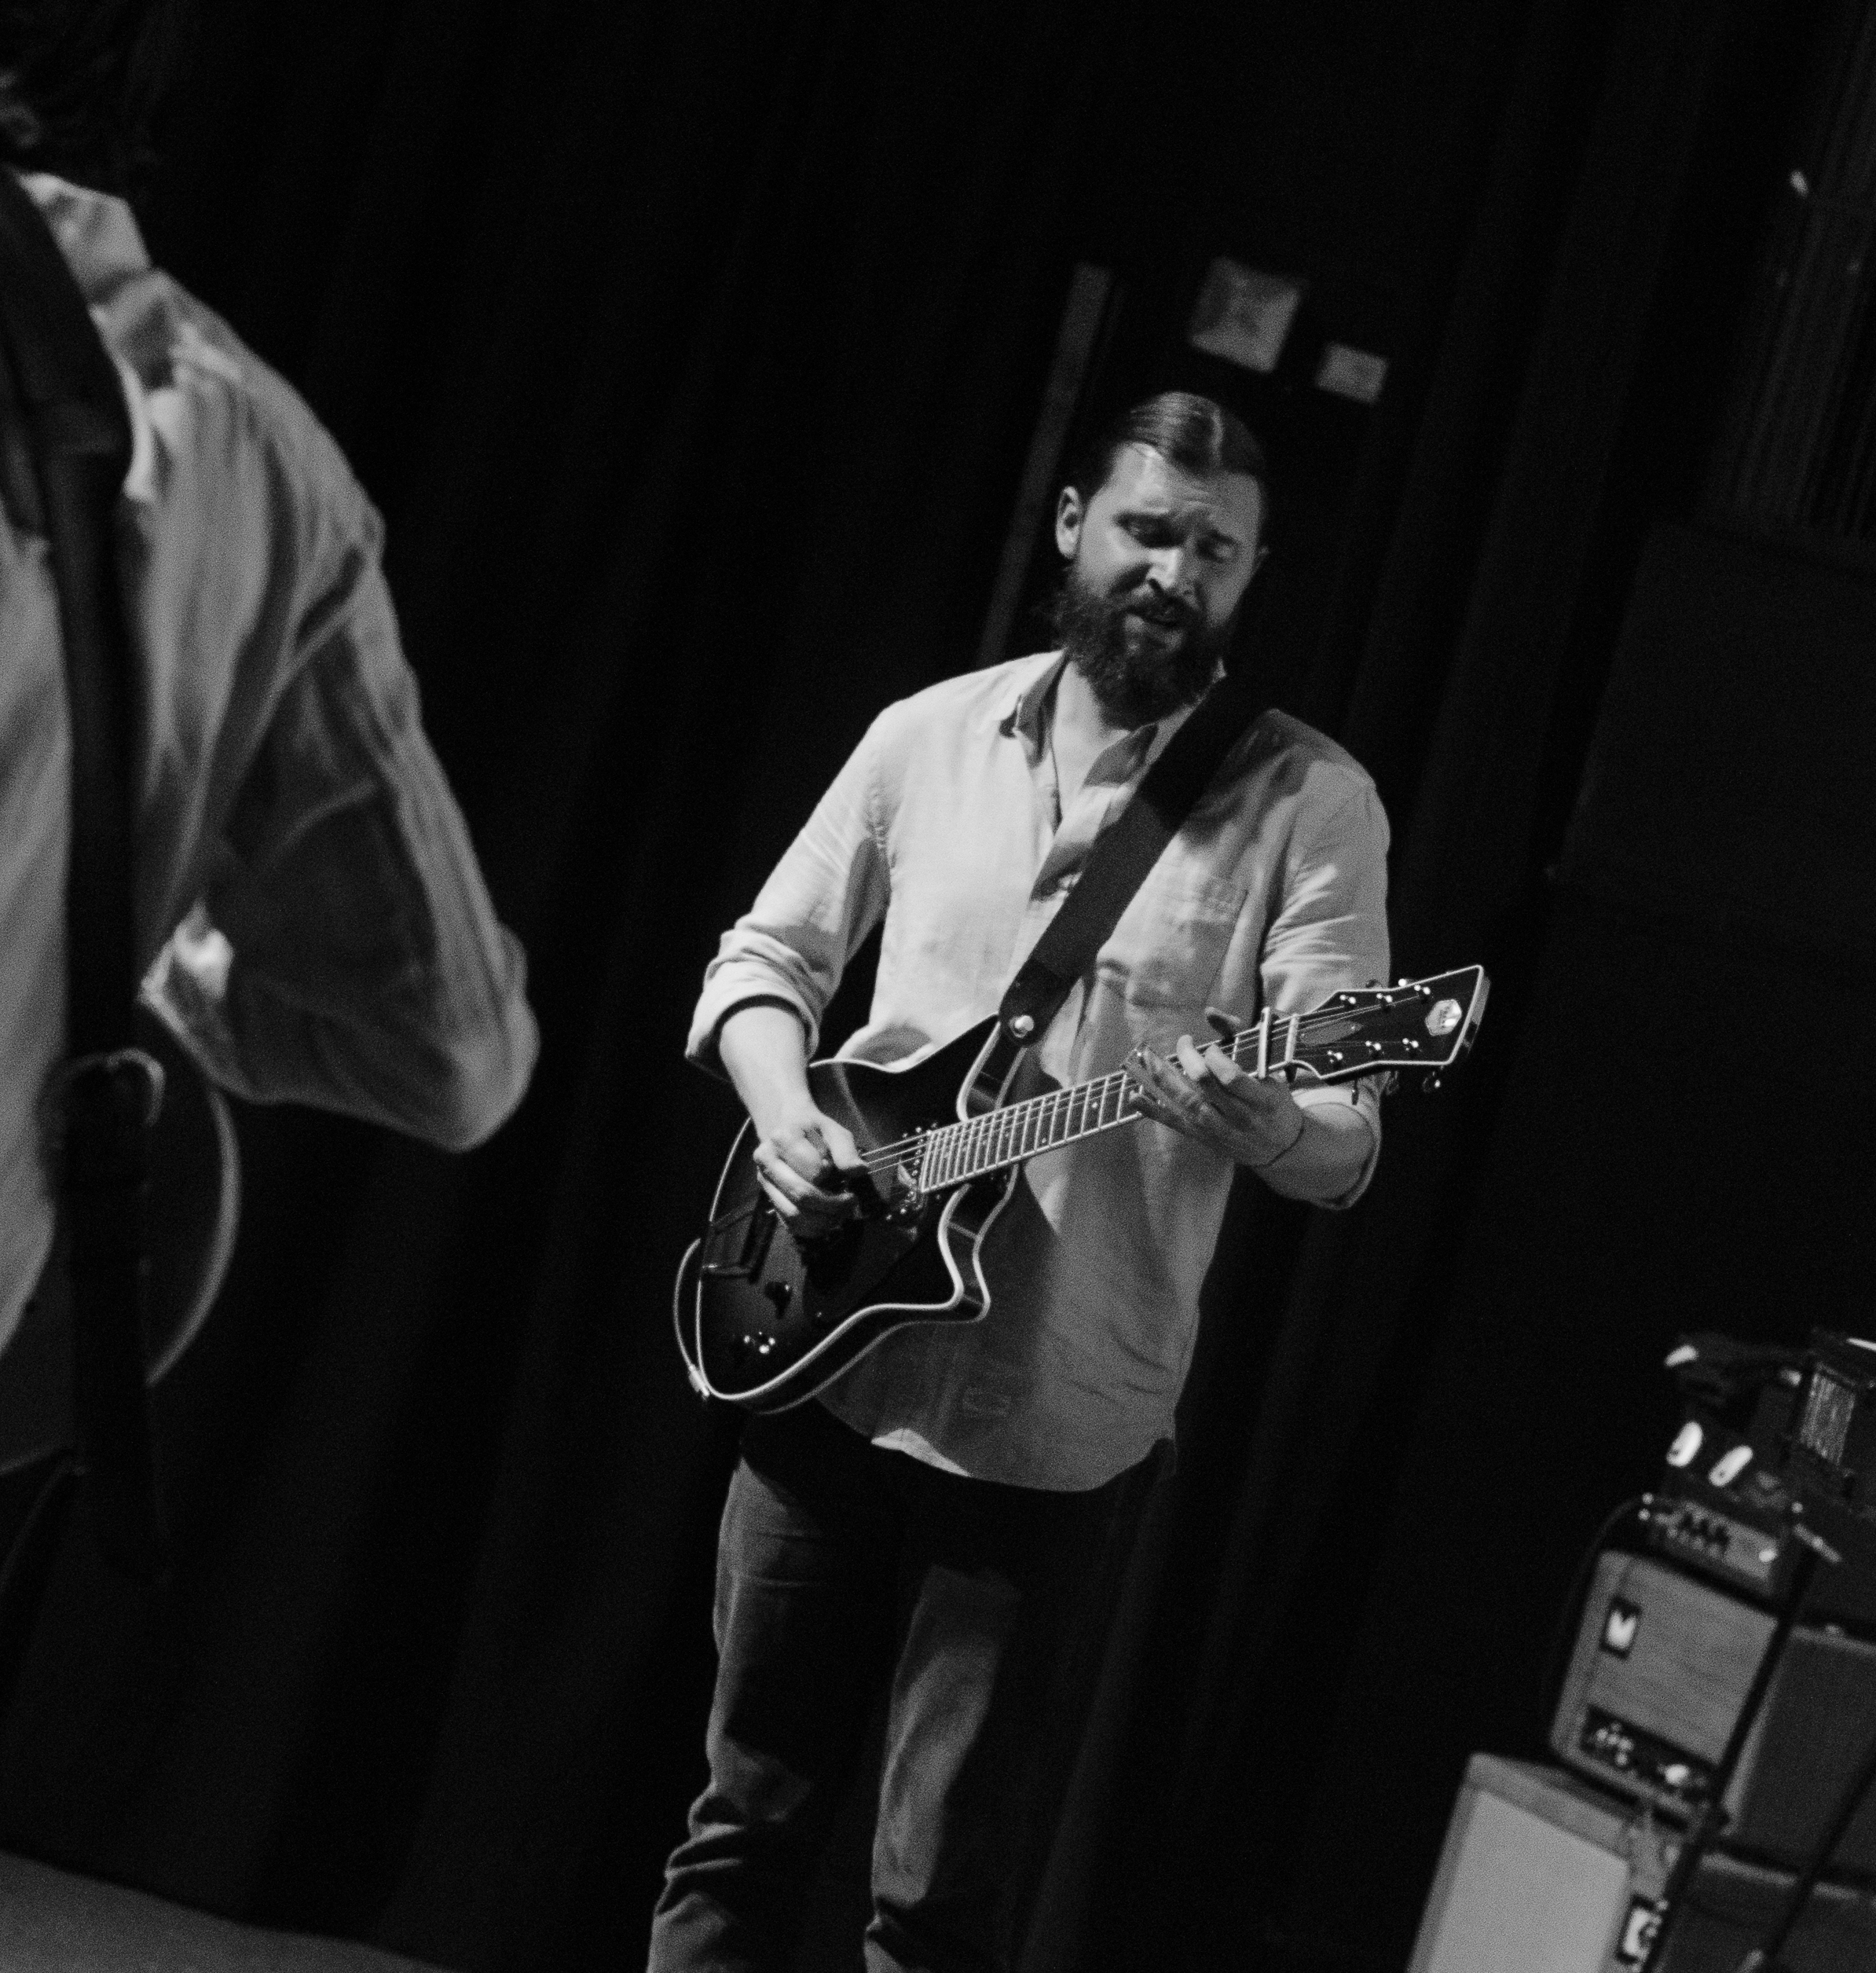 Trevor Menear on Tour with Dawes the Band with his Frank Brothers Signature Model Custom Electric Guitar